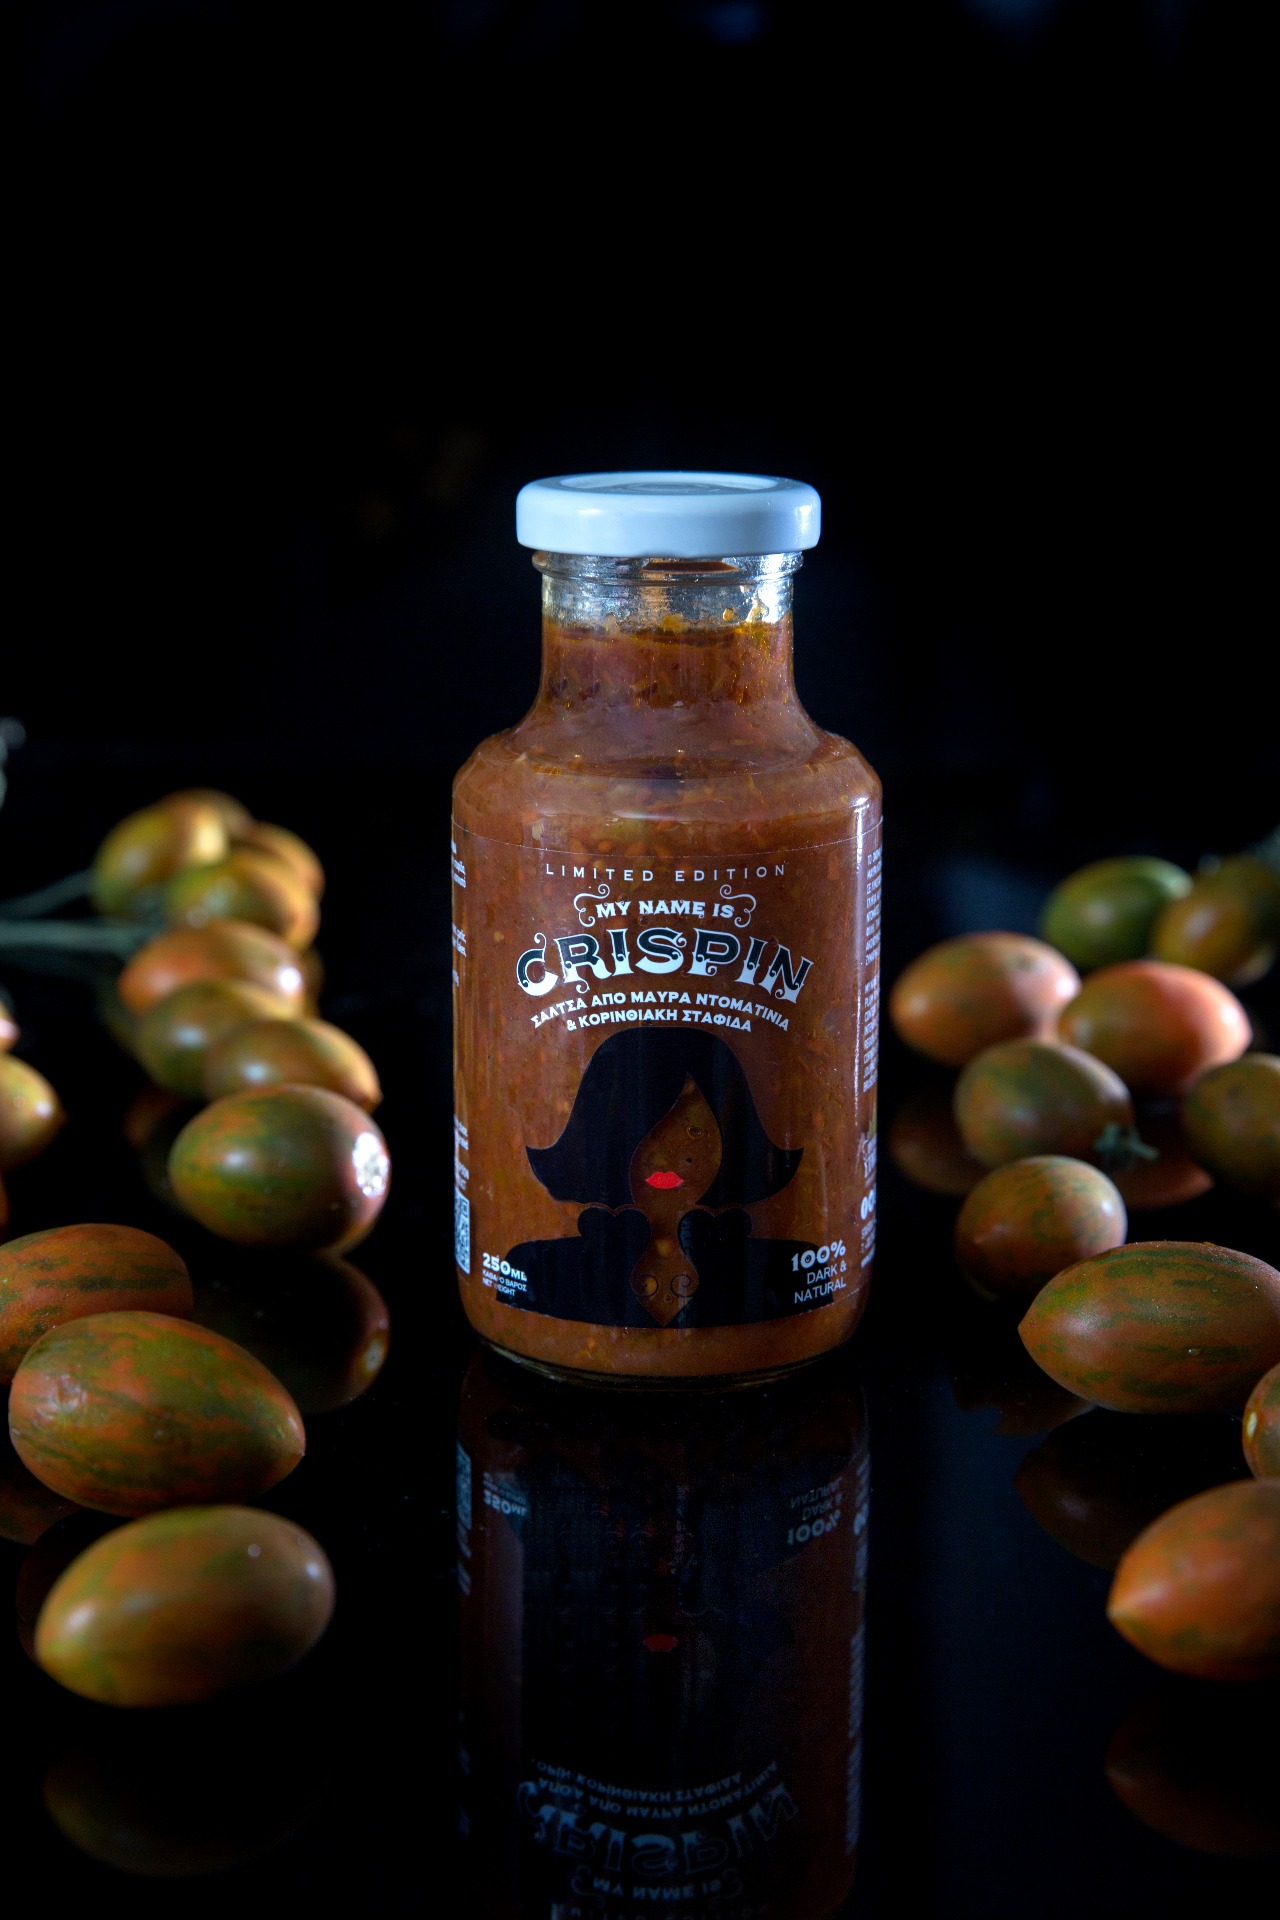 Black_Crispino_Plum_Tomatoes_Sauce_with_Black_Currants